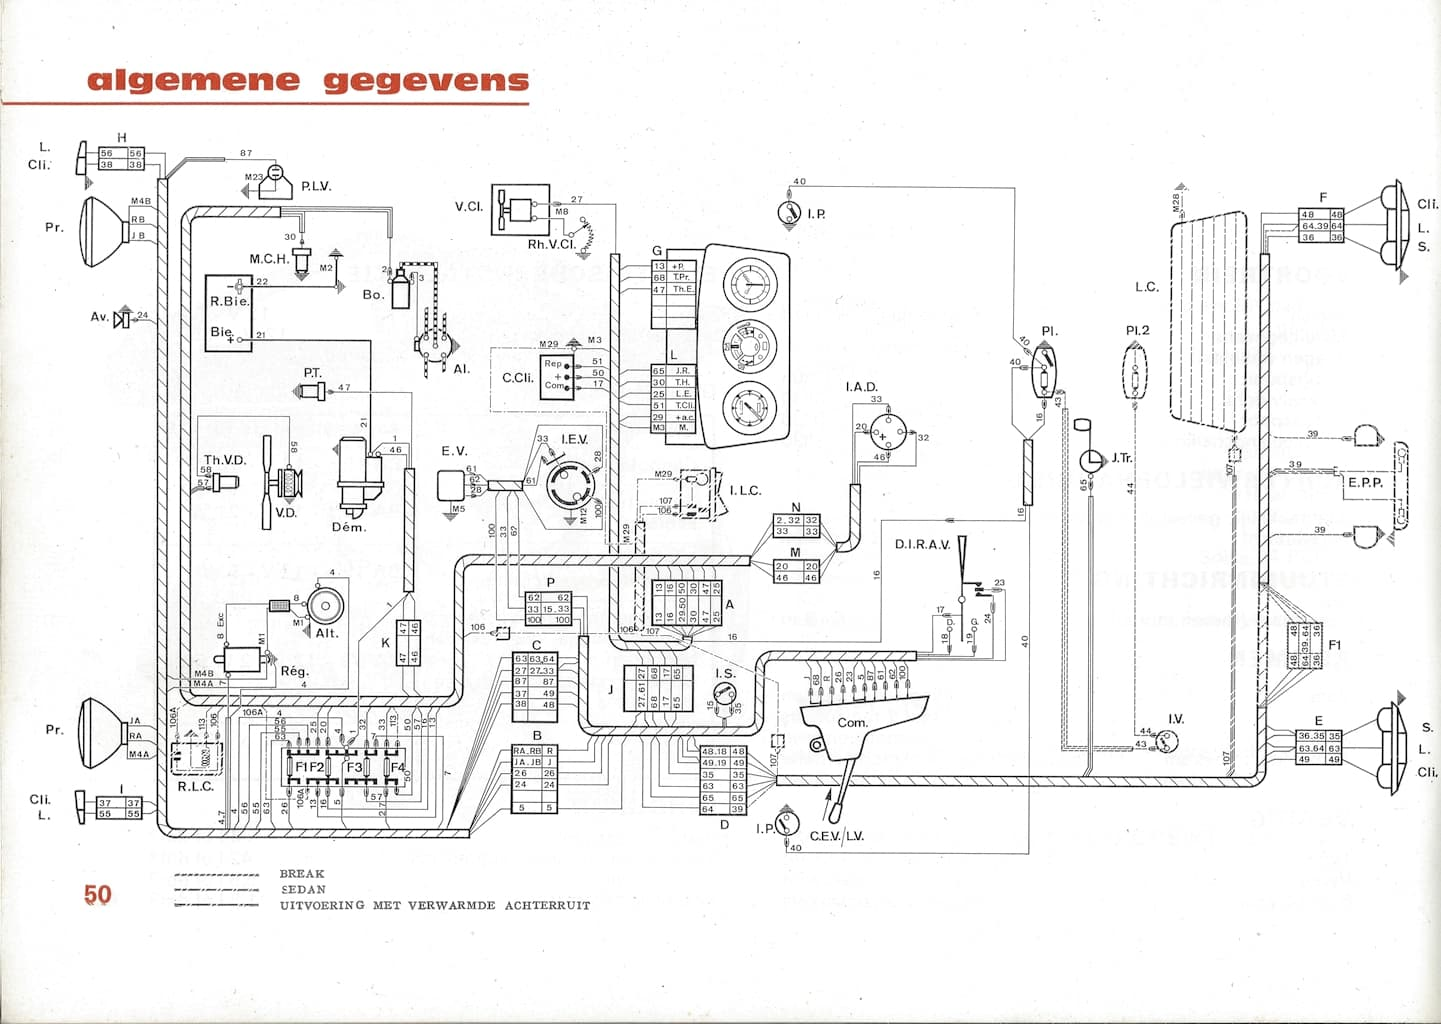 wiring diagram toyota mighty x kasea 50 wiring diagram wiring diagram data  kasea 50 wiring diagram wiring